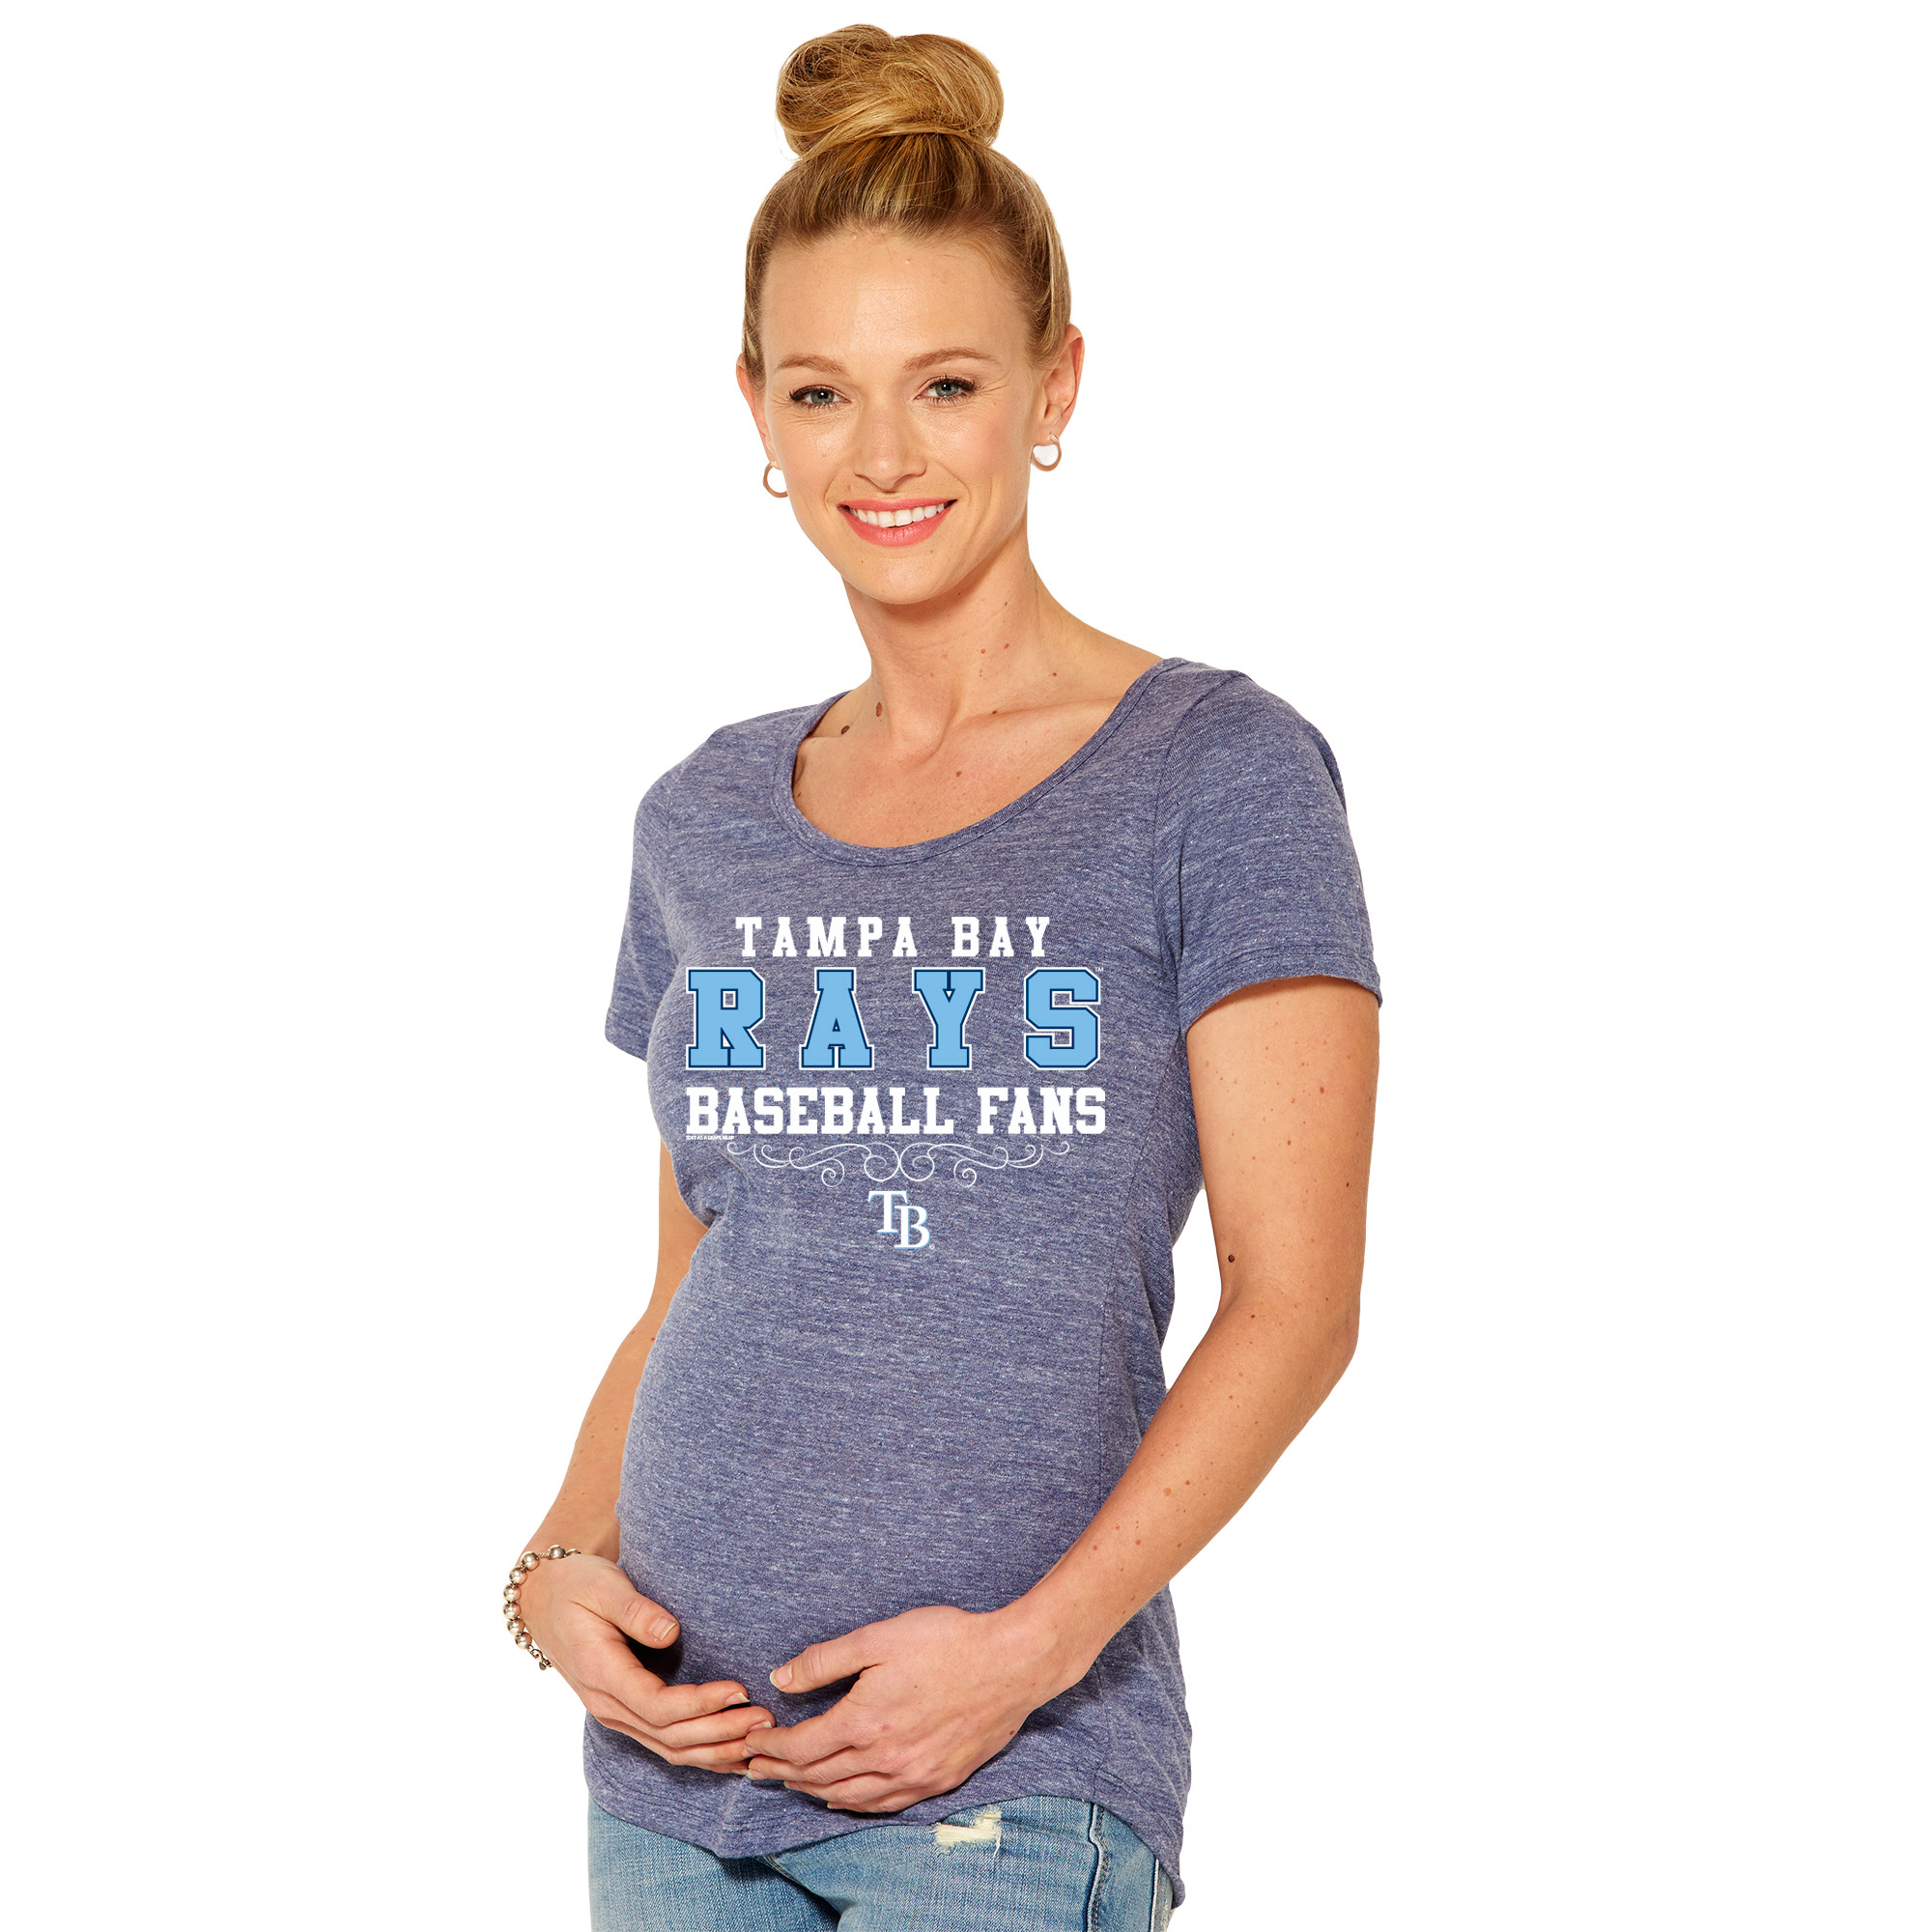 Tampa Bay Rays Soft As A Grape Women's Fans Tri-Blend Maternity T-Shirt - Navy